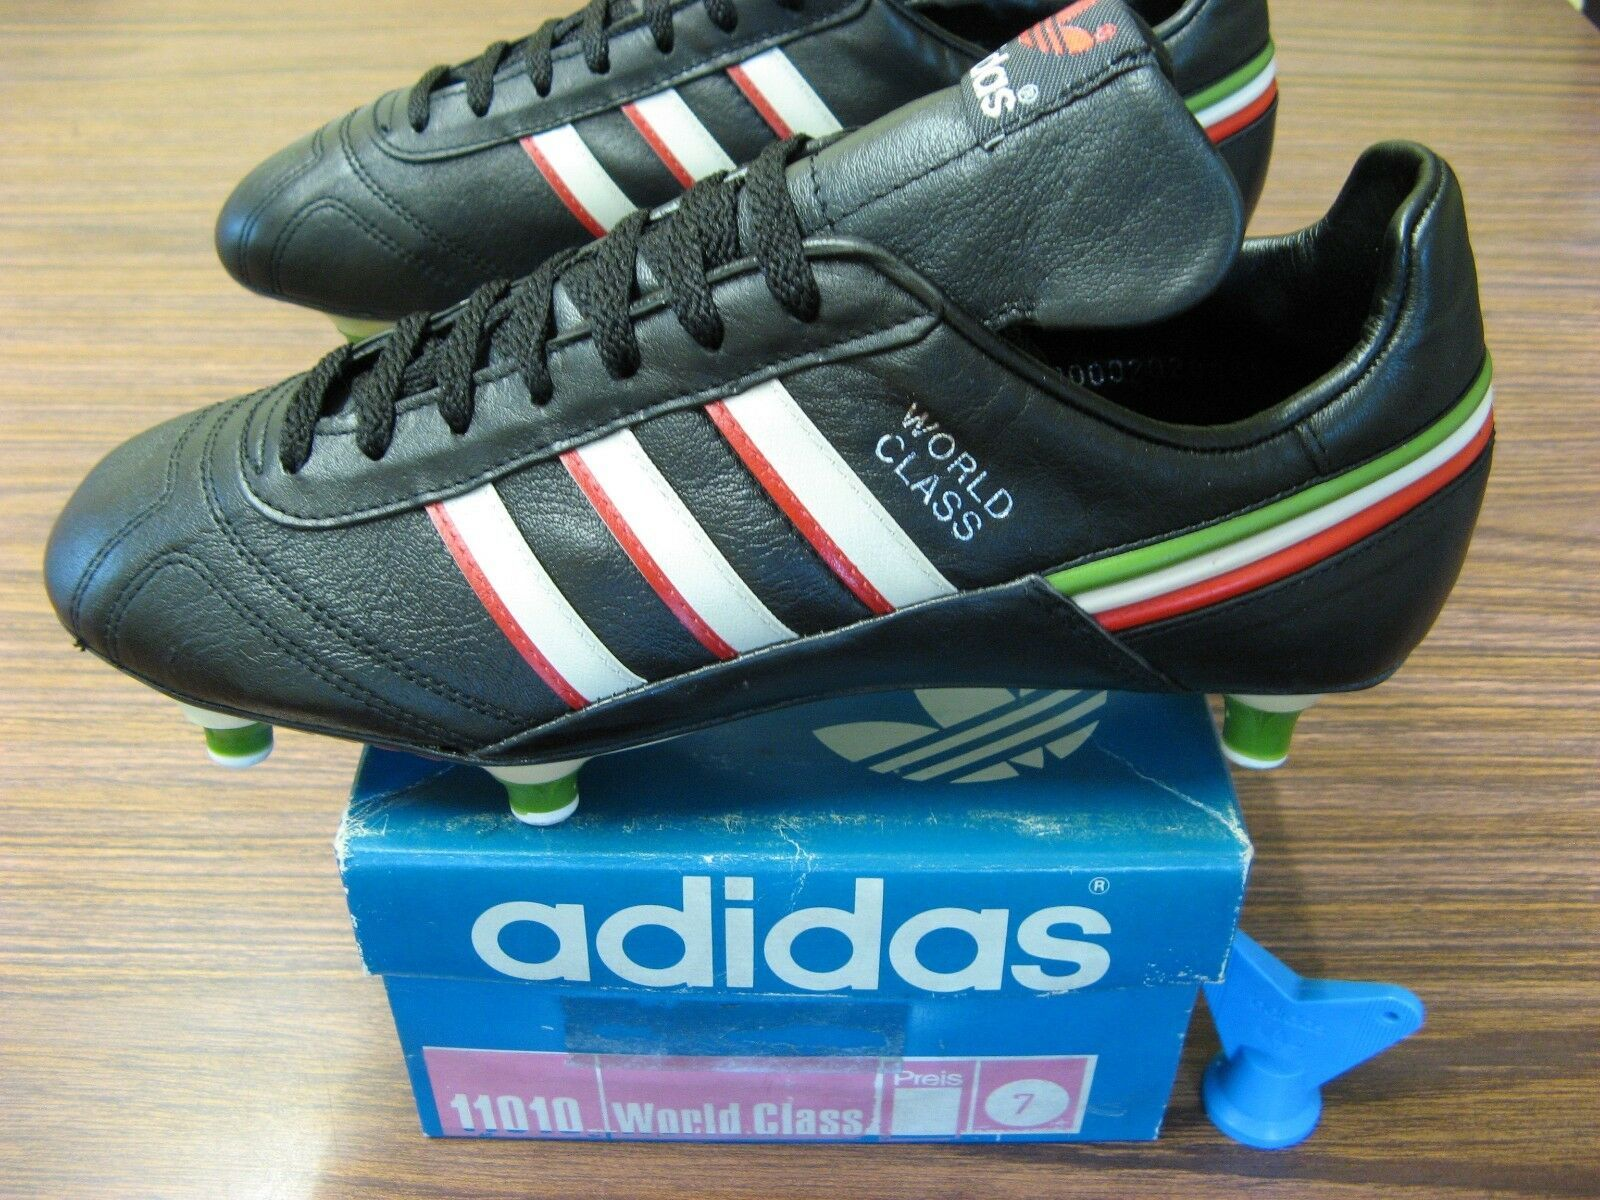 Vintage 1980 S Adidas World Class Football Boots Bnib Deadstock 1986 World Cup Ebay Football Boots Adidas Soccer Boots